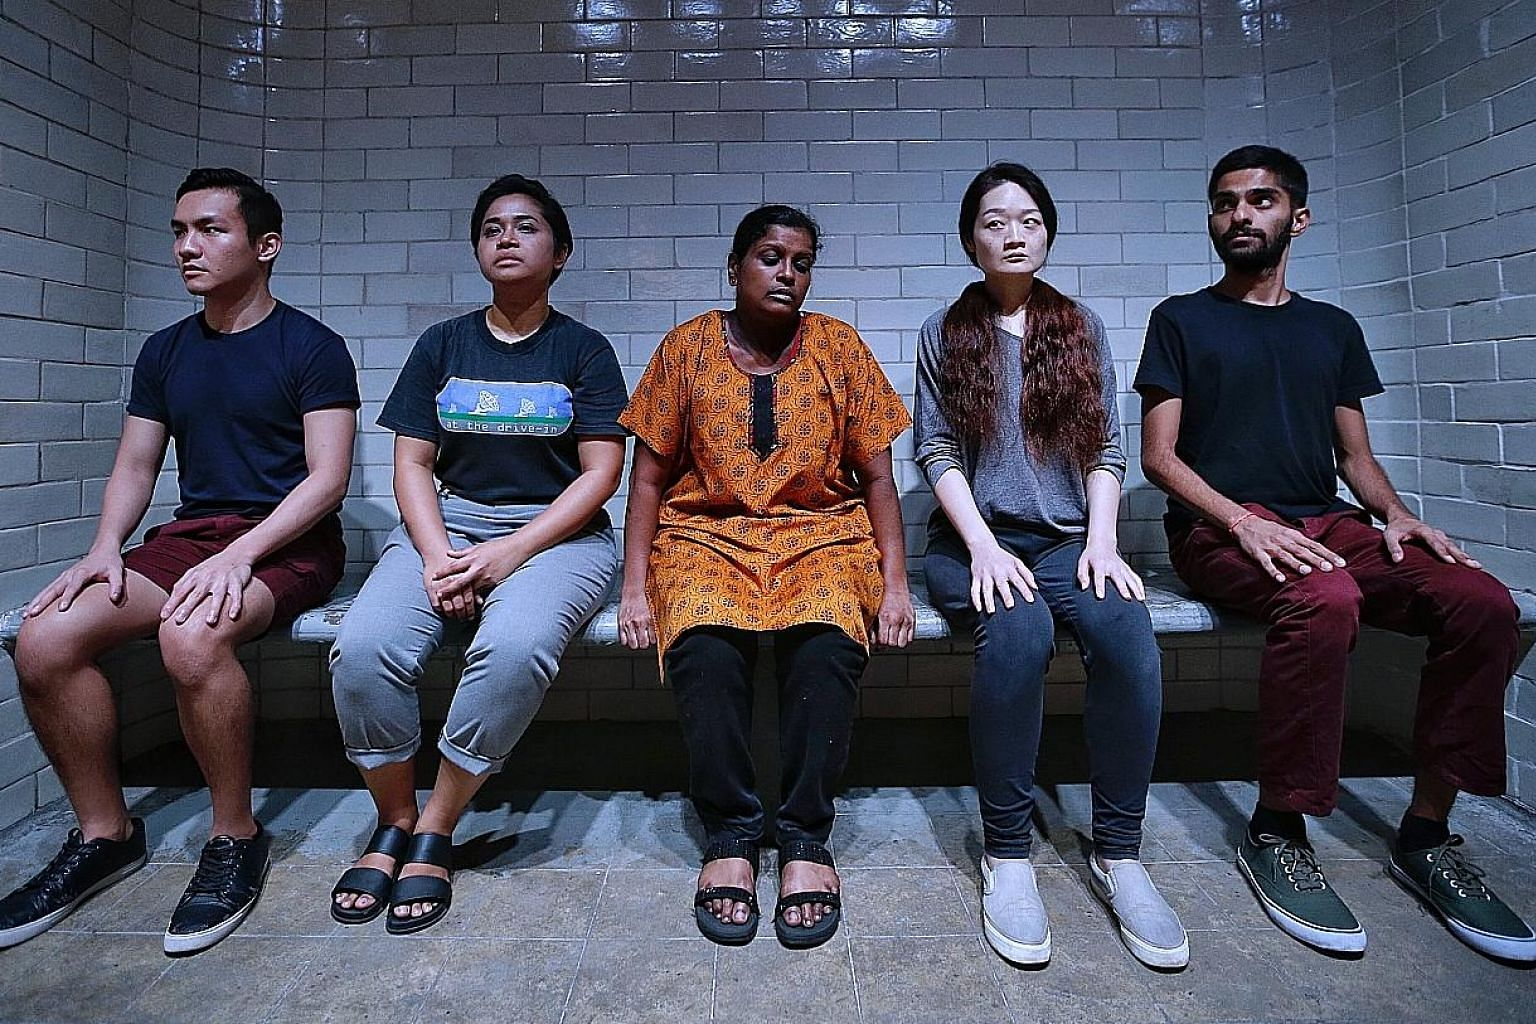 The cast of 0600, including (from far left) Jeramy Lim, Suhaili Safari, Grace Kalaiselvi, Lina Yu and Vignesh Singh, takes viewers on a journey tracing the prisoners' route through the former Supreme Court building.